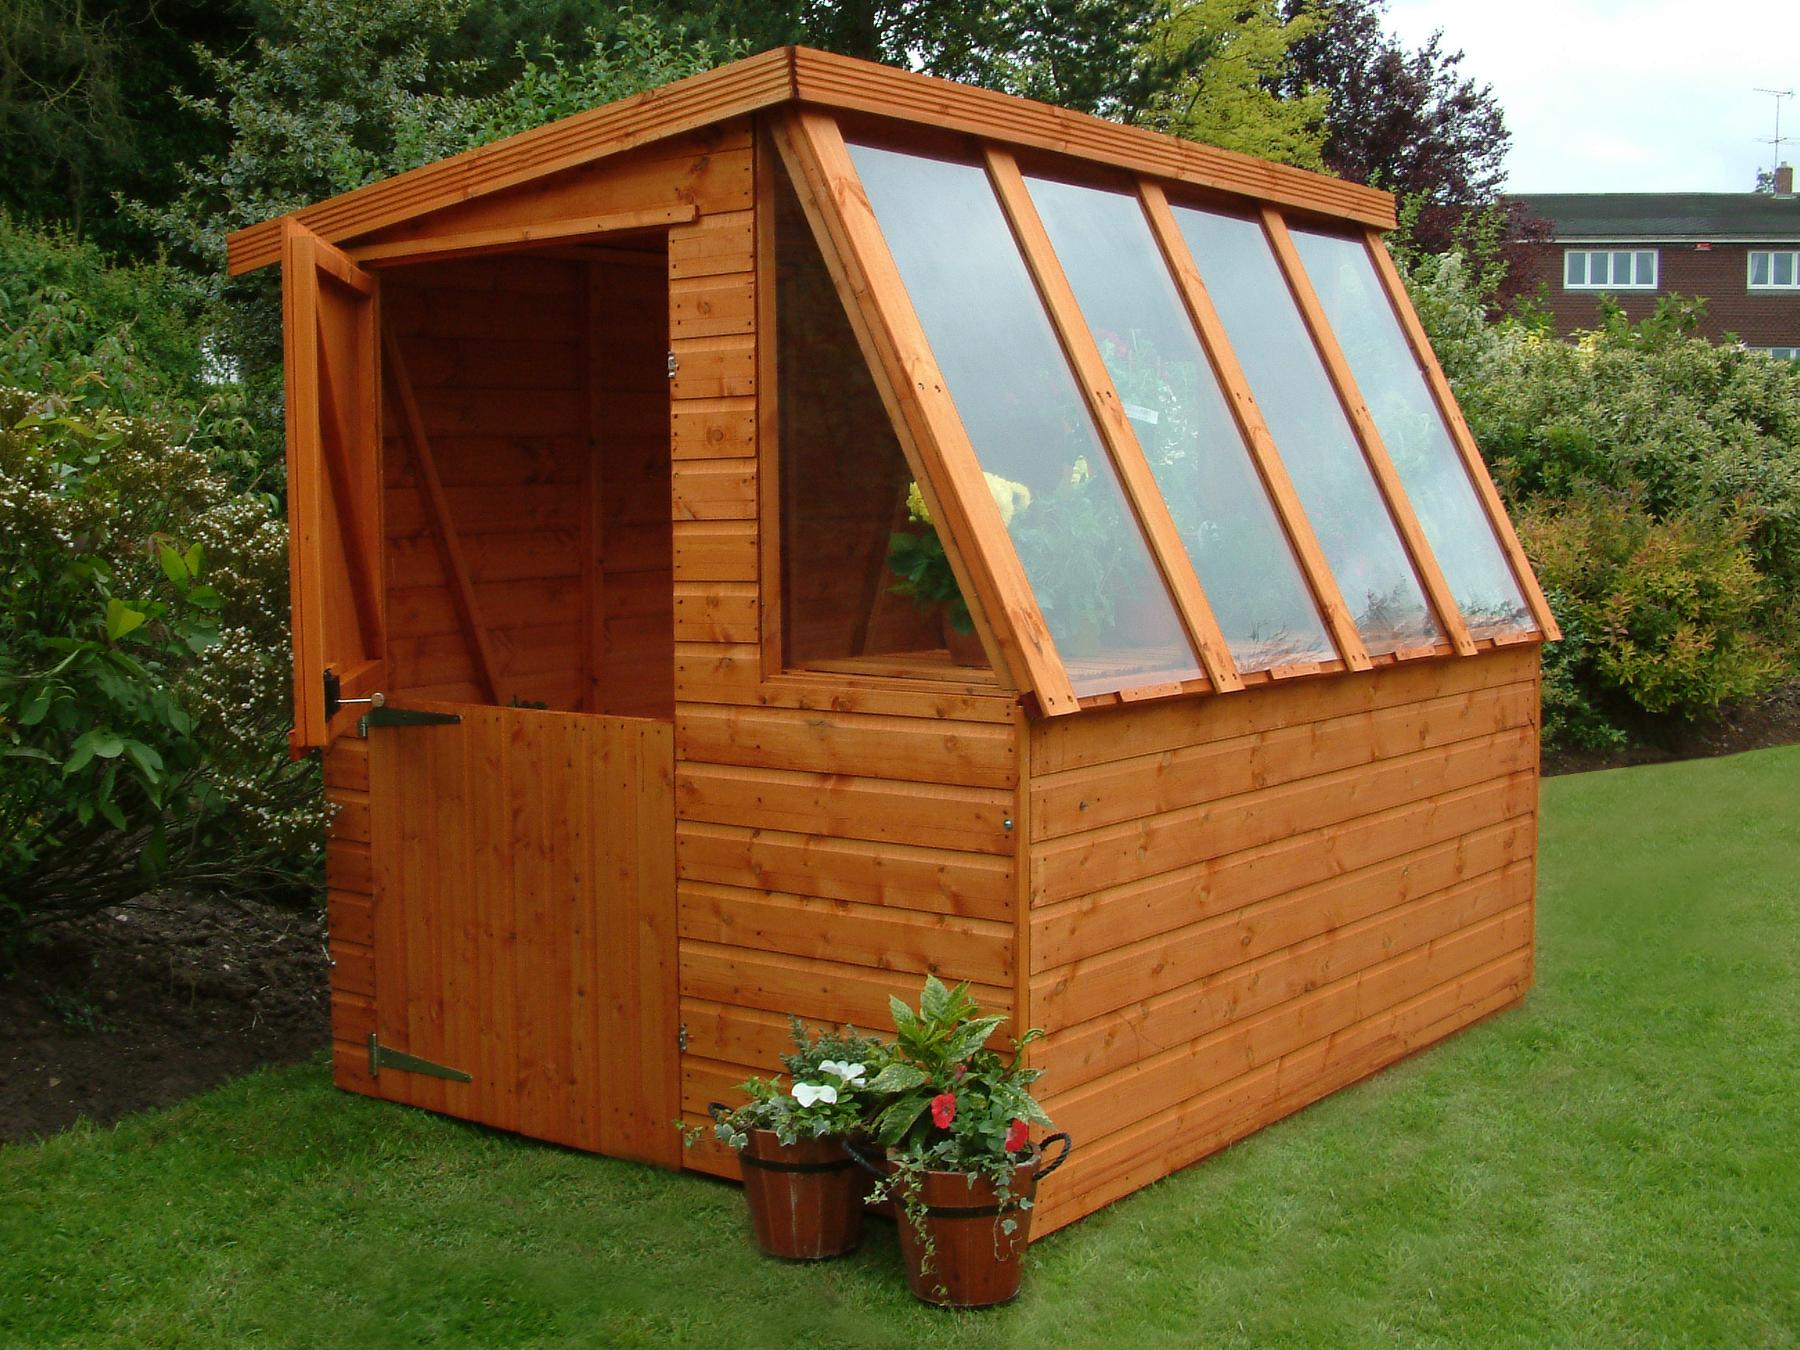 Permalink to how to build a small storage shed